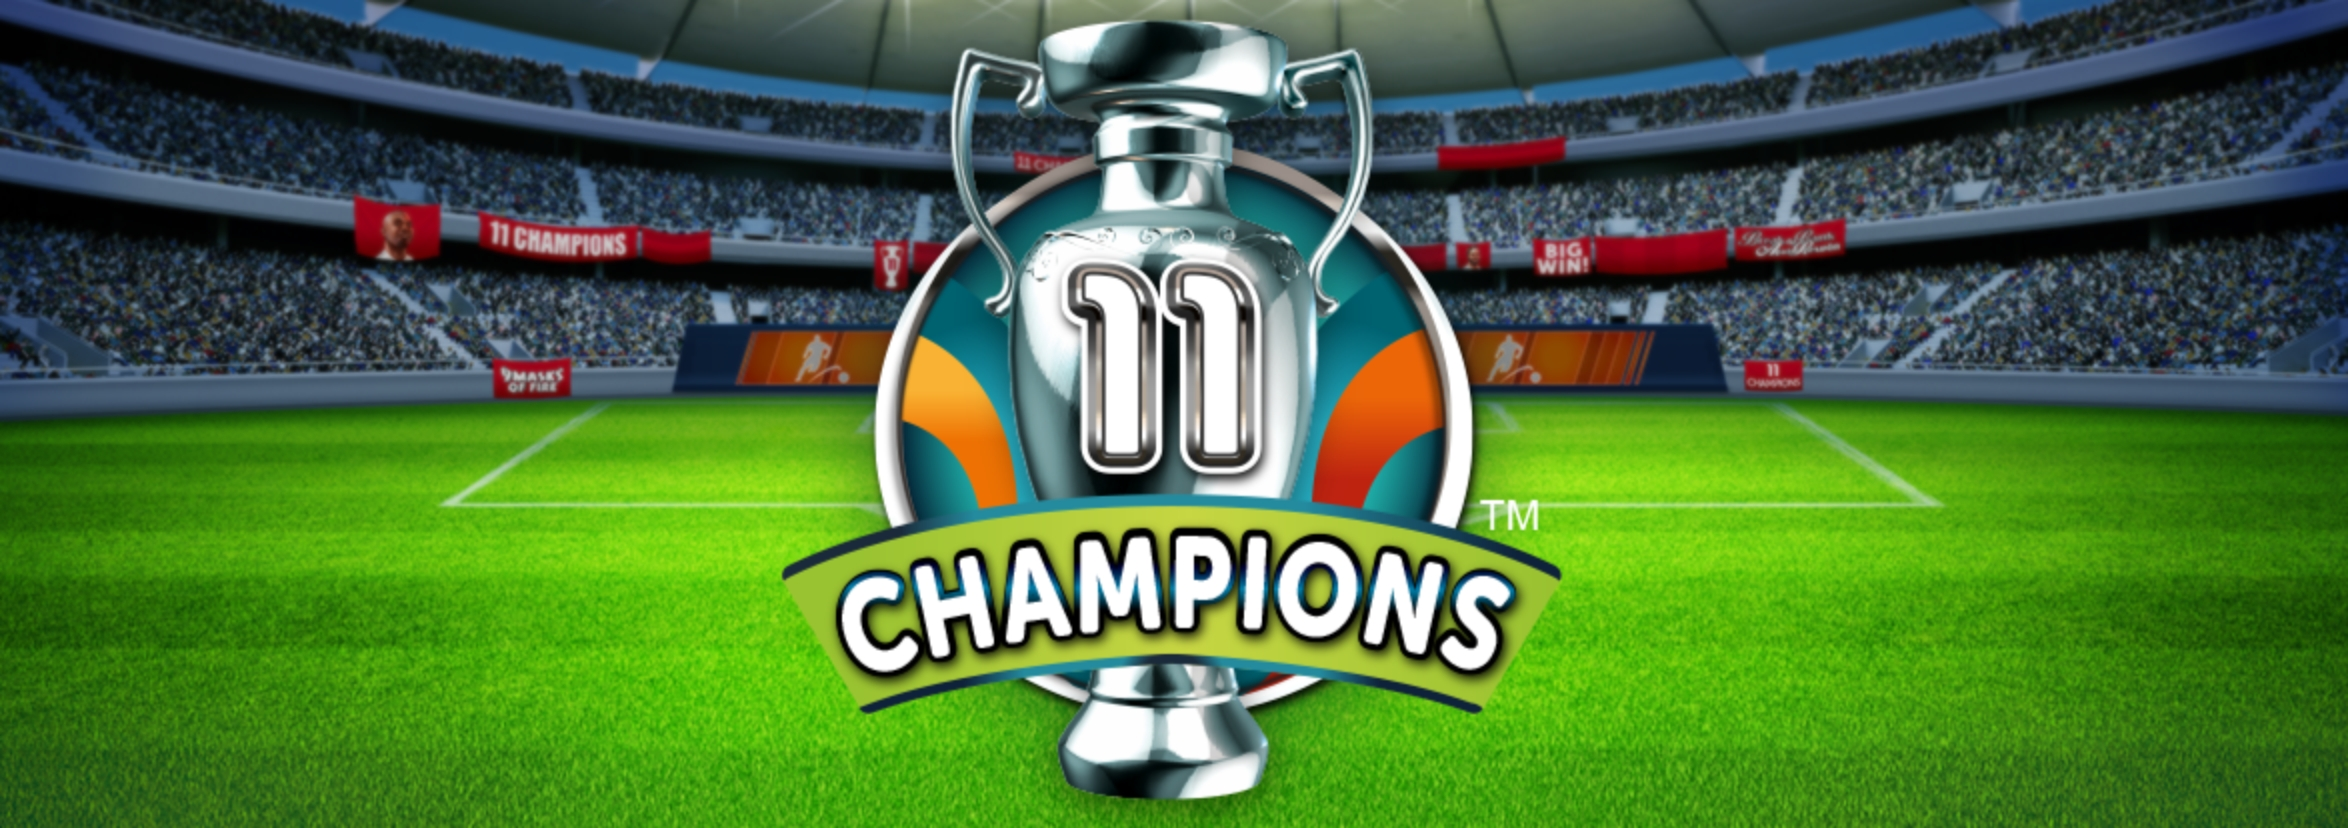 The 11 Champions Online Slot Demo Game by Gameburger Studios